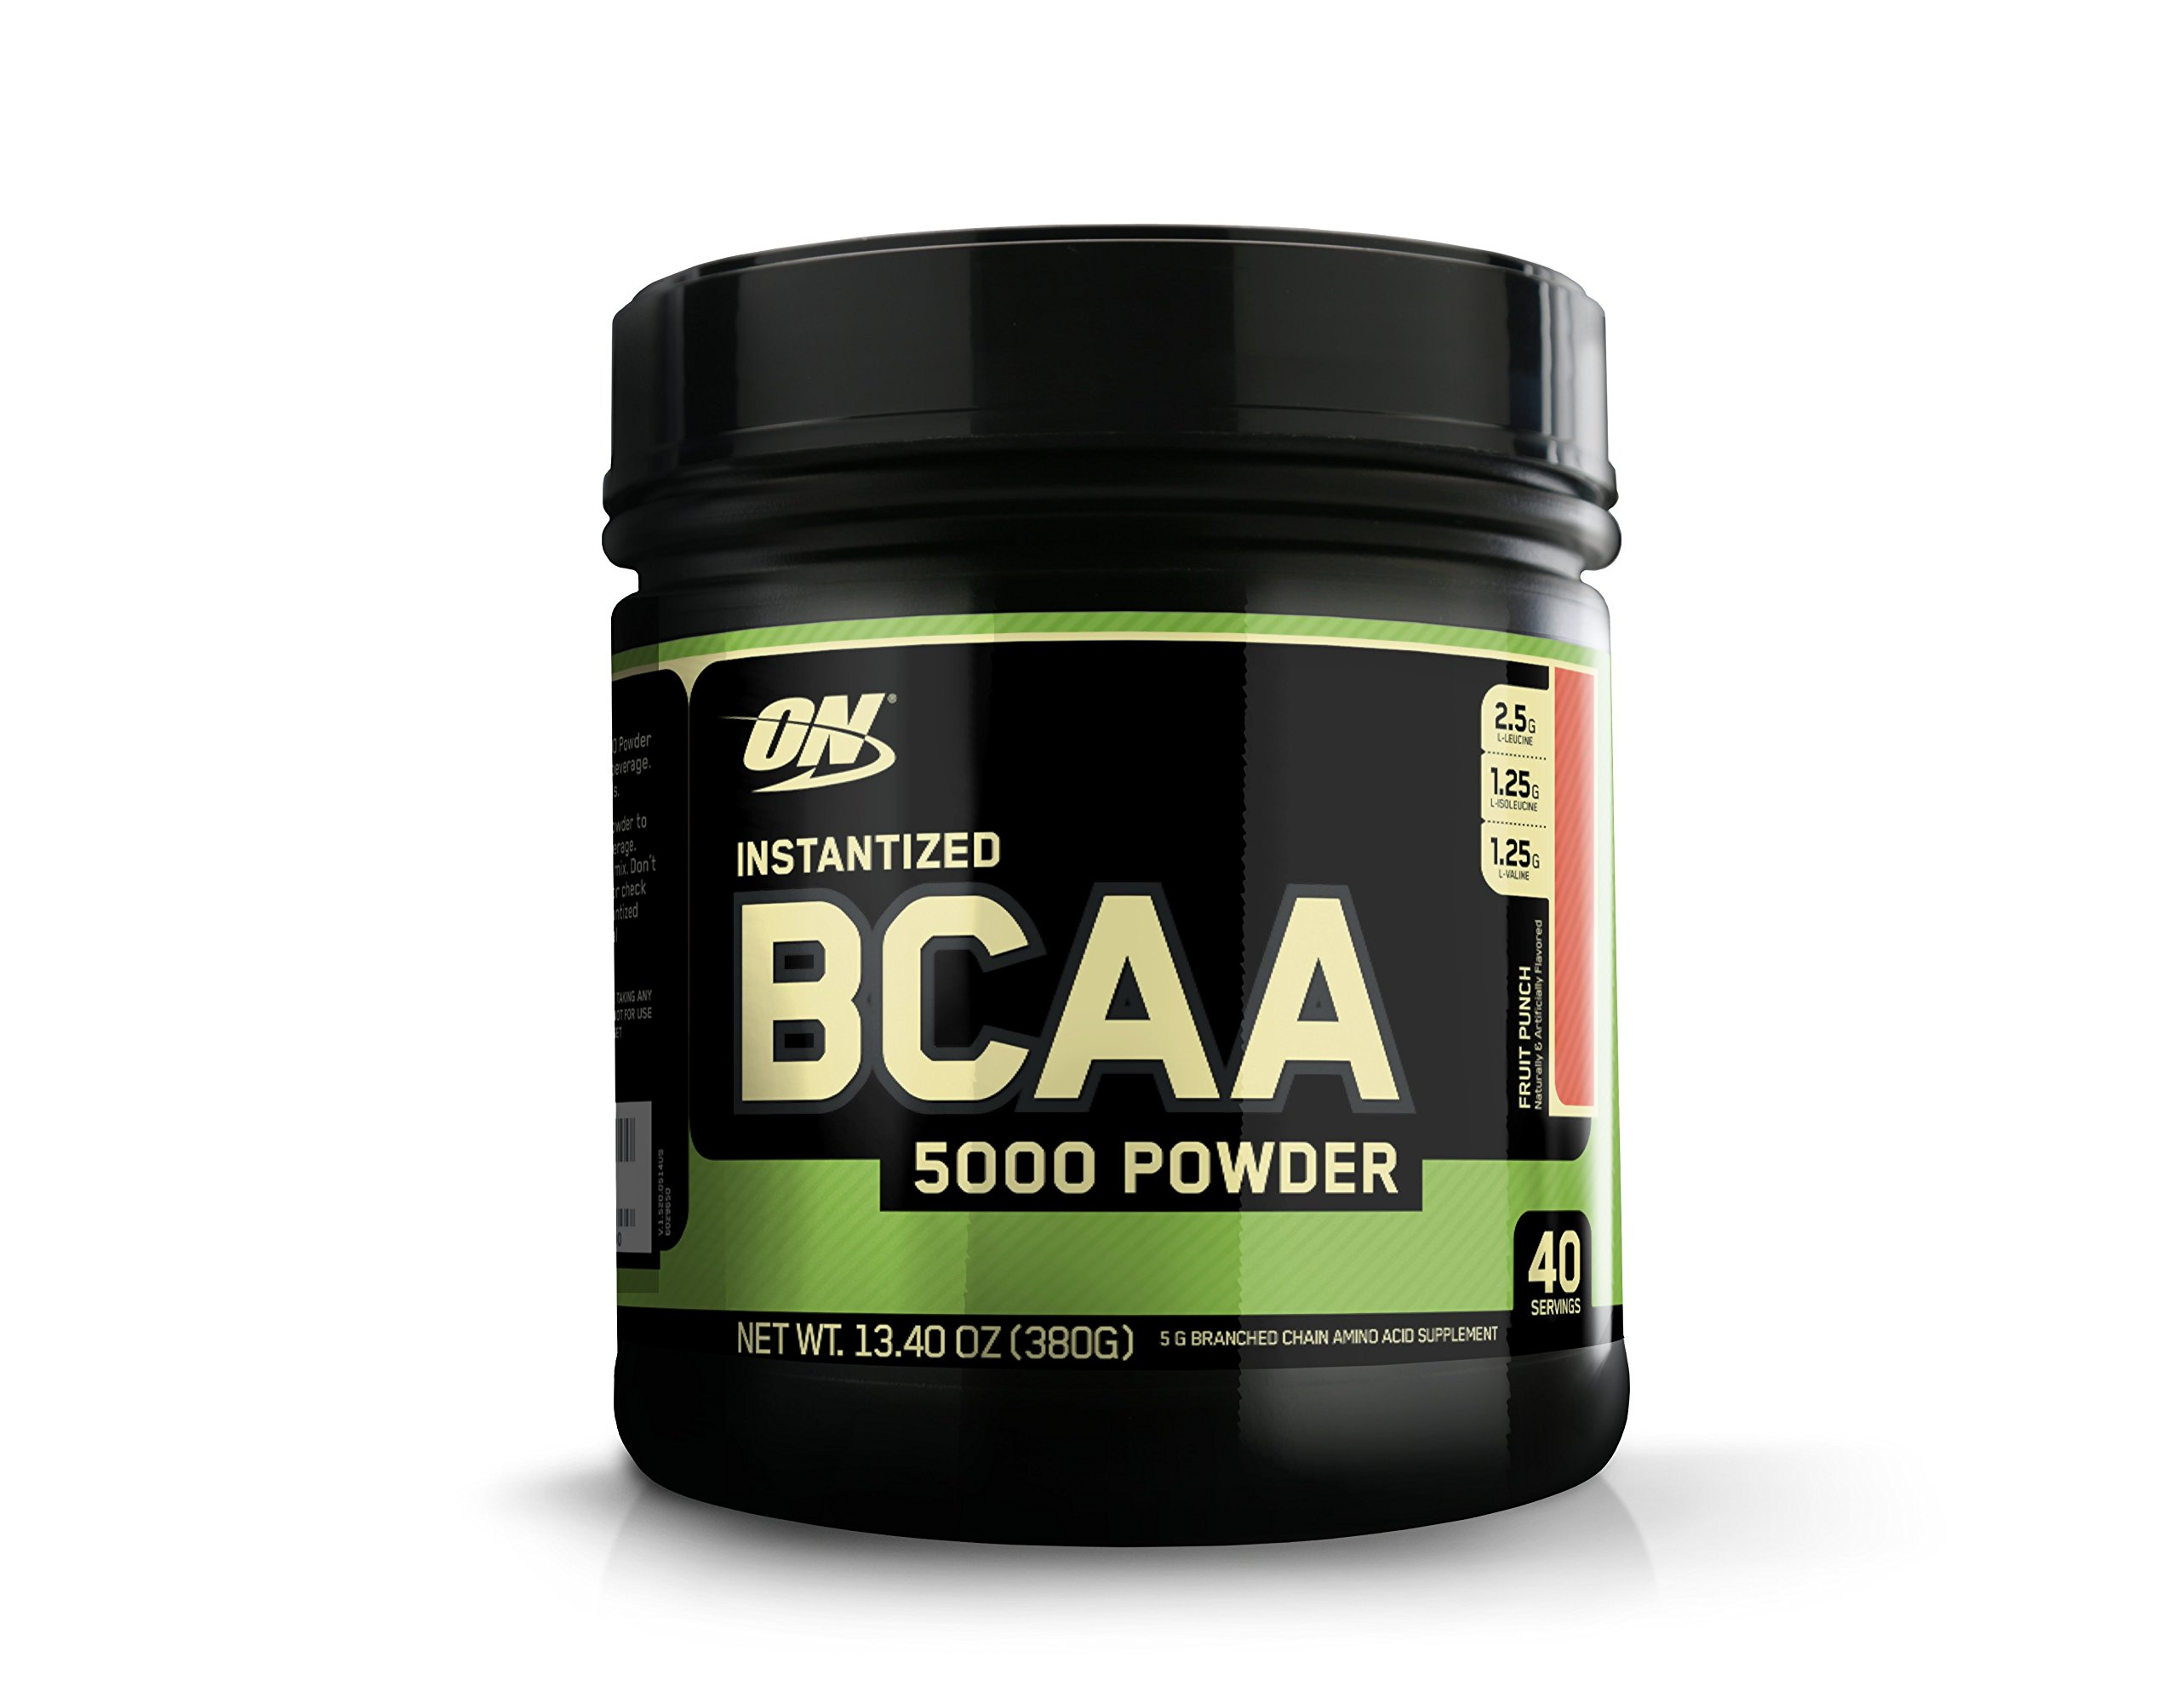 Optimum Nutrition Instantized BCAA Branched Chain Essential Amino Acids Powder, 5000mg, Flavor: Fruit Punch, 40 Servings